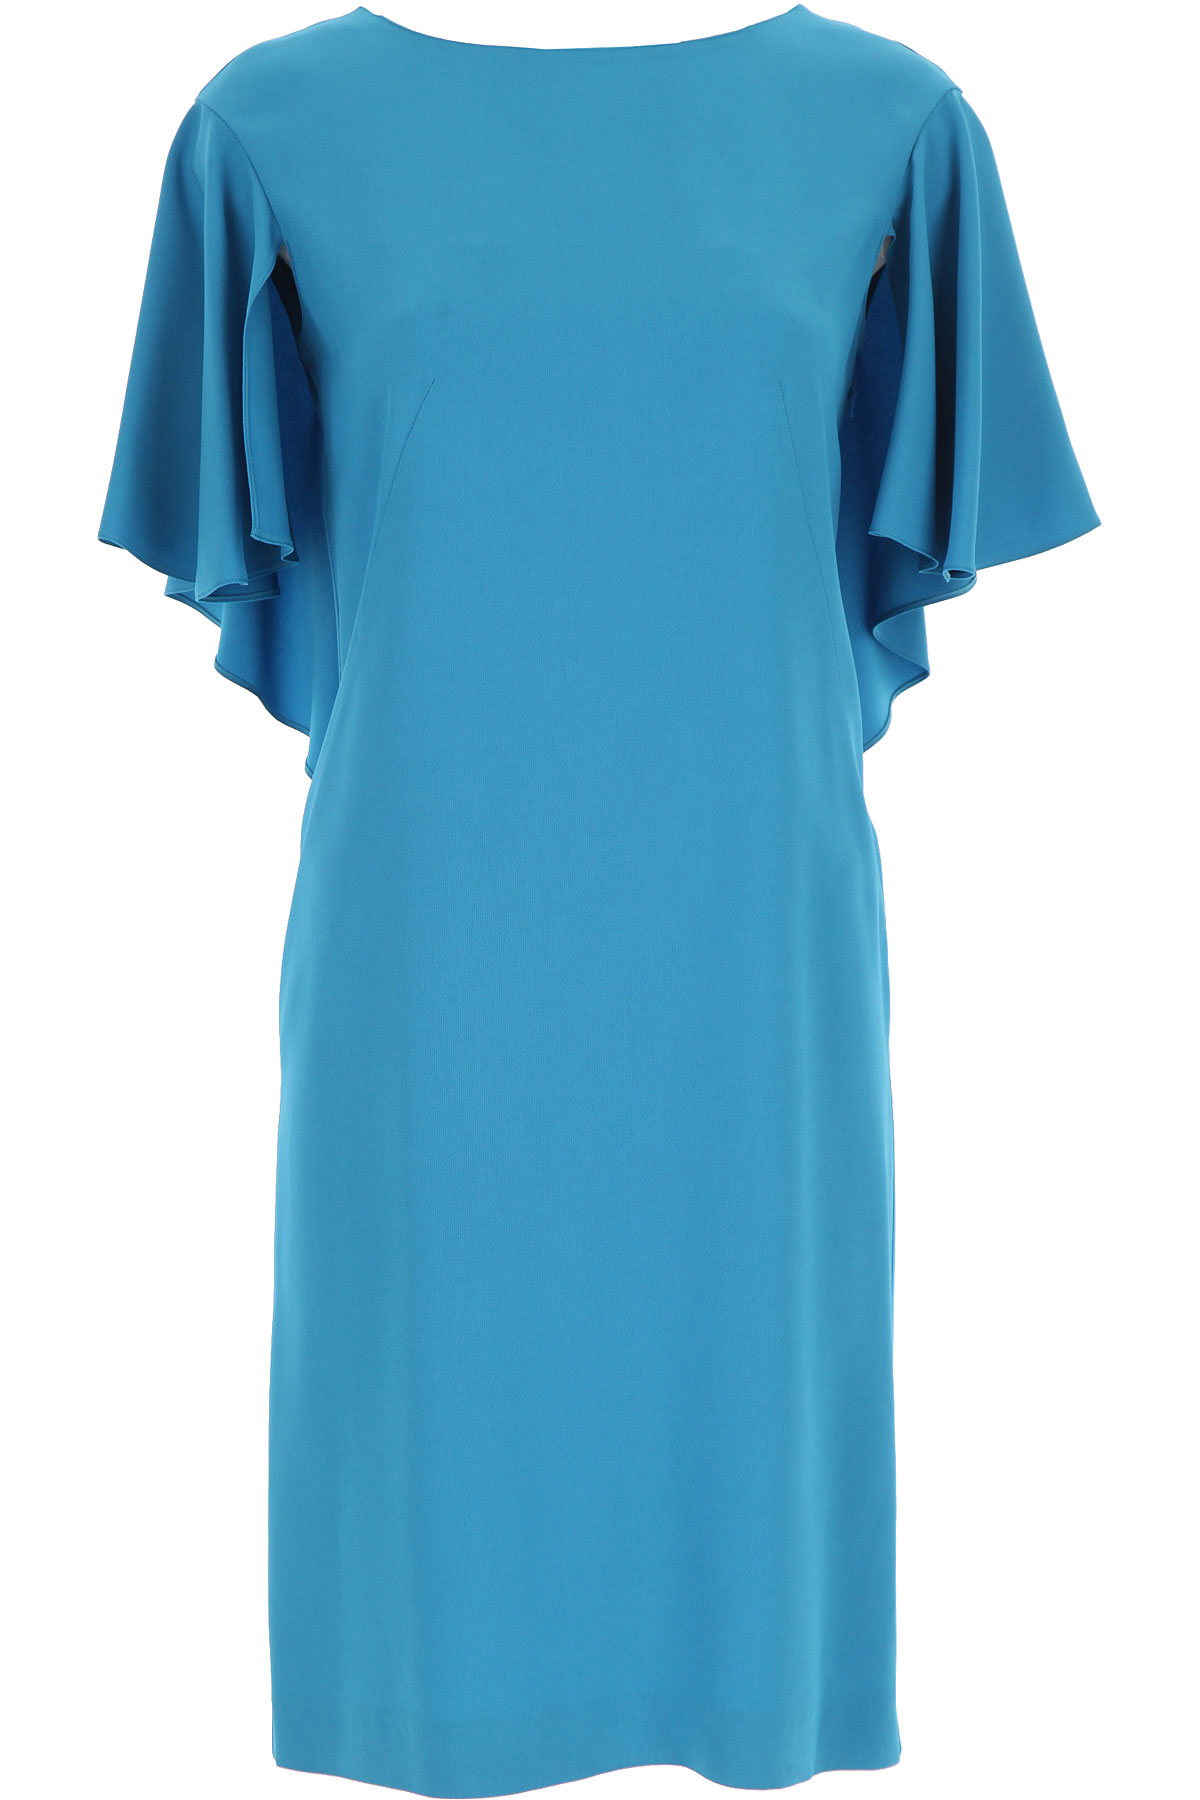 Alberta Ferretti Dress for Women, Evening Cocktail Party On Sale, Teal Blue, acetate, 2019, 10 12 4 6 8